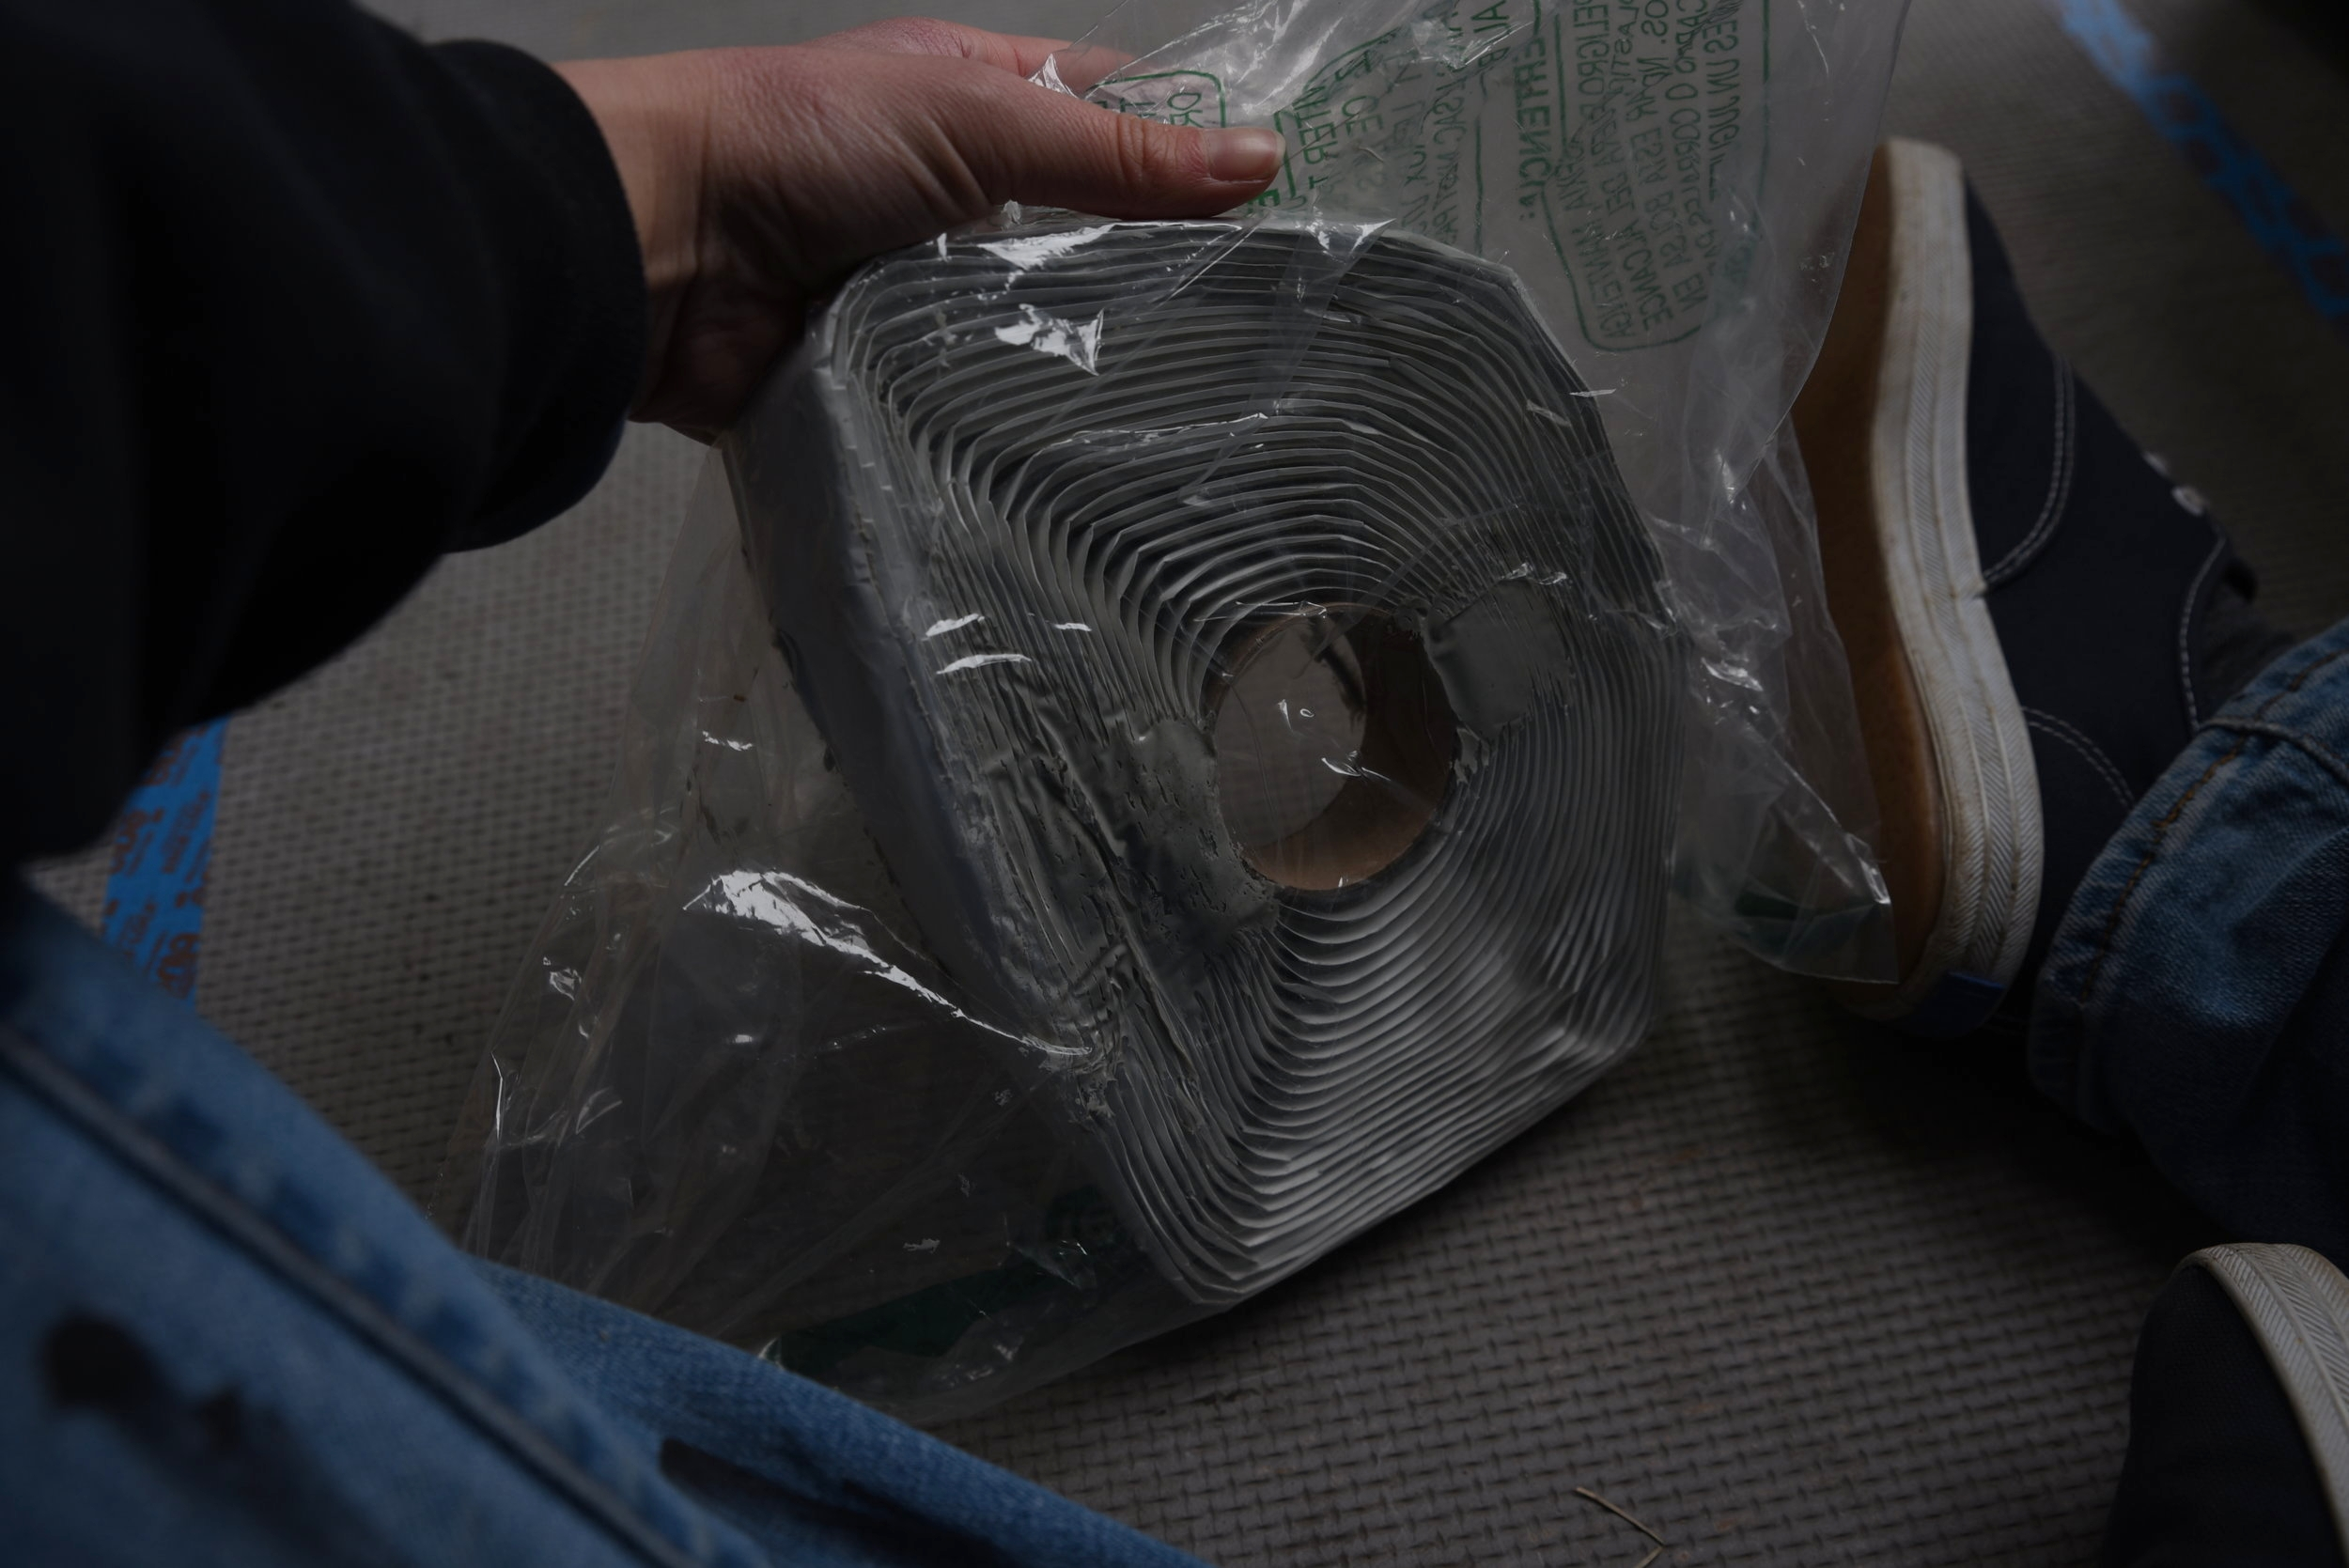 Butyl tape is a really stick putty like tape that will hold your fan in place and create a seal against the van.